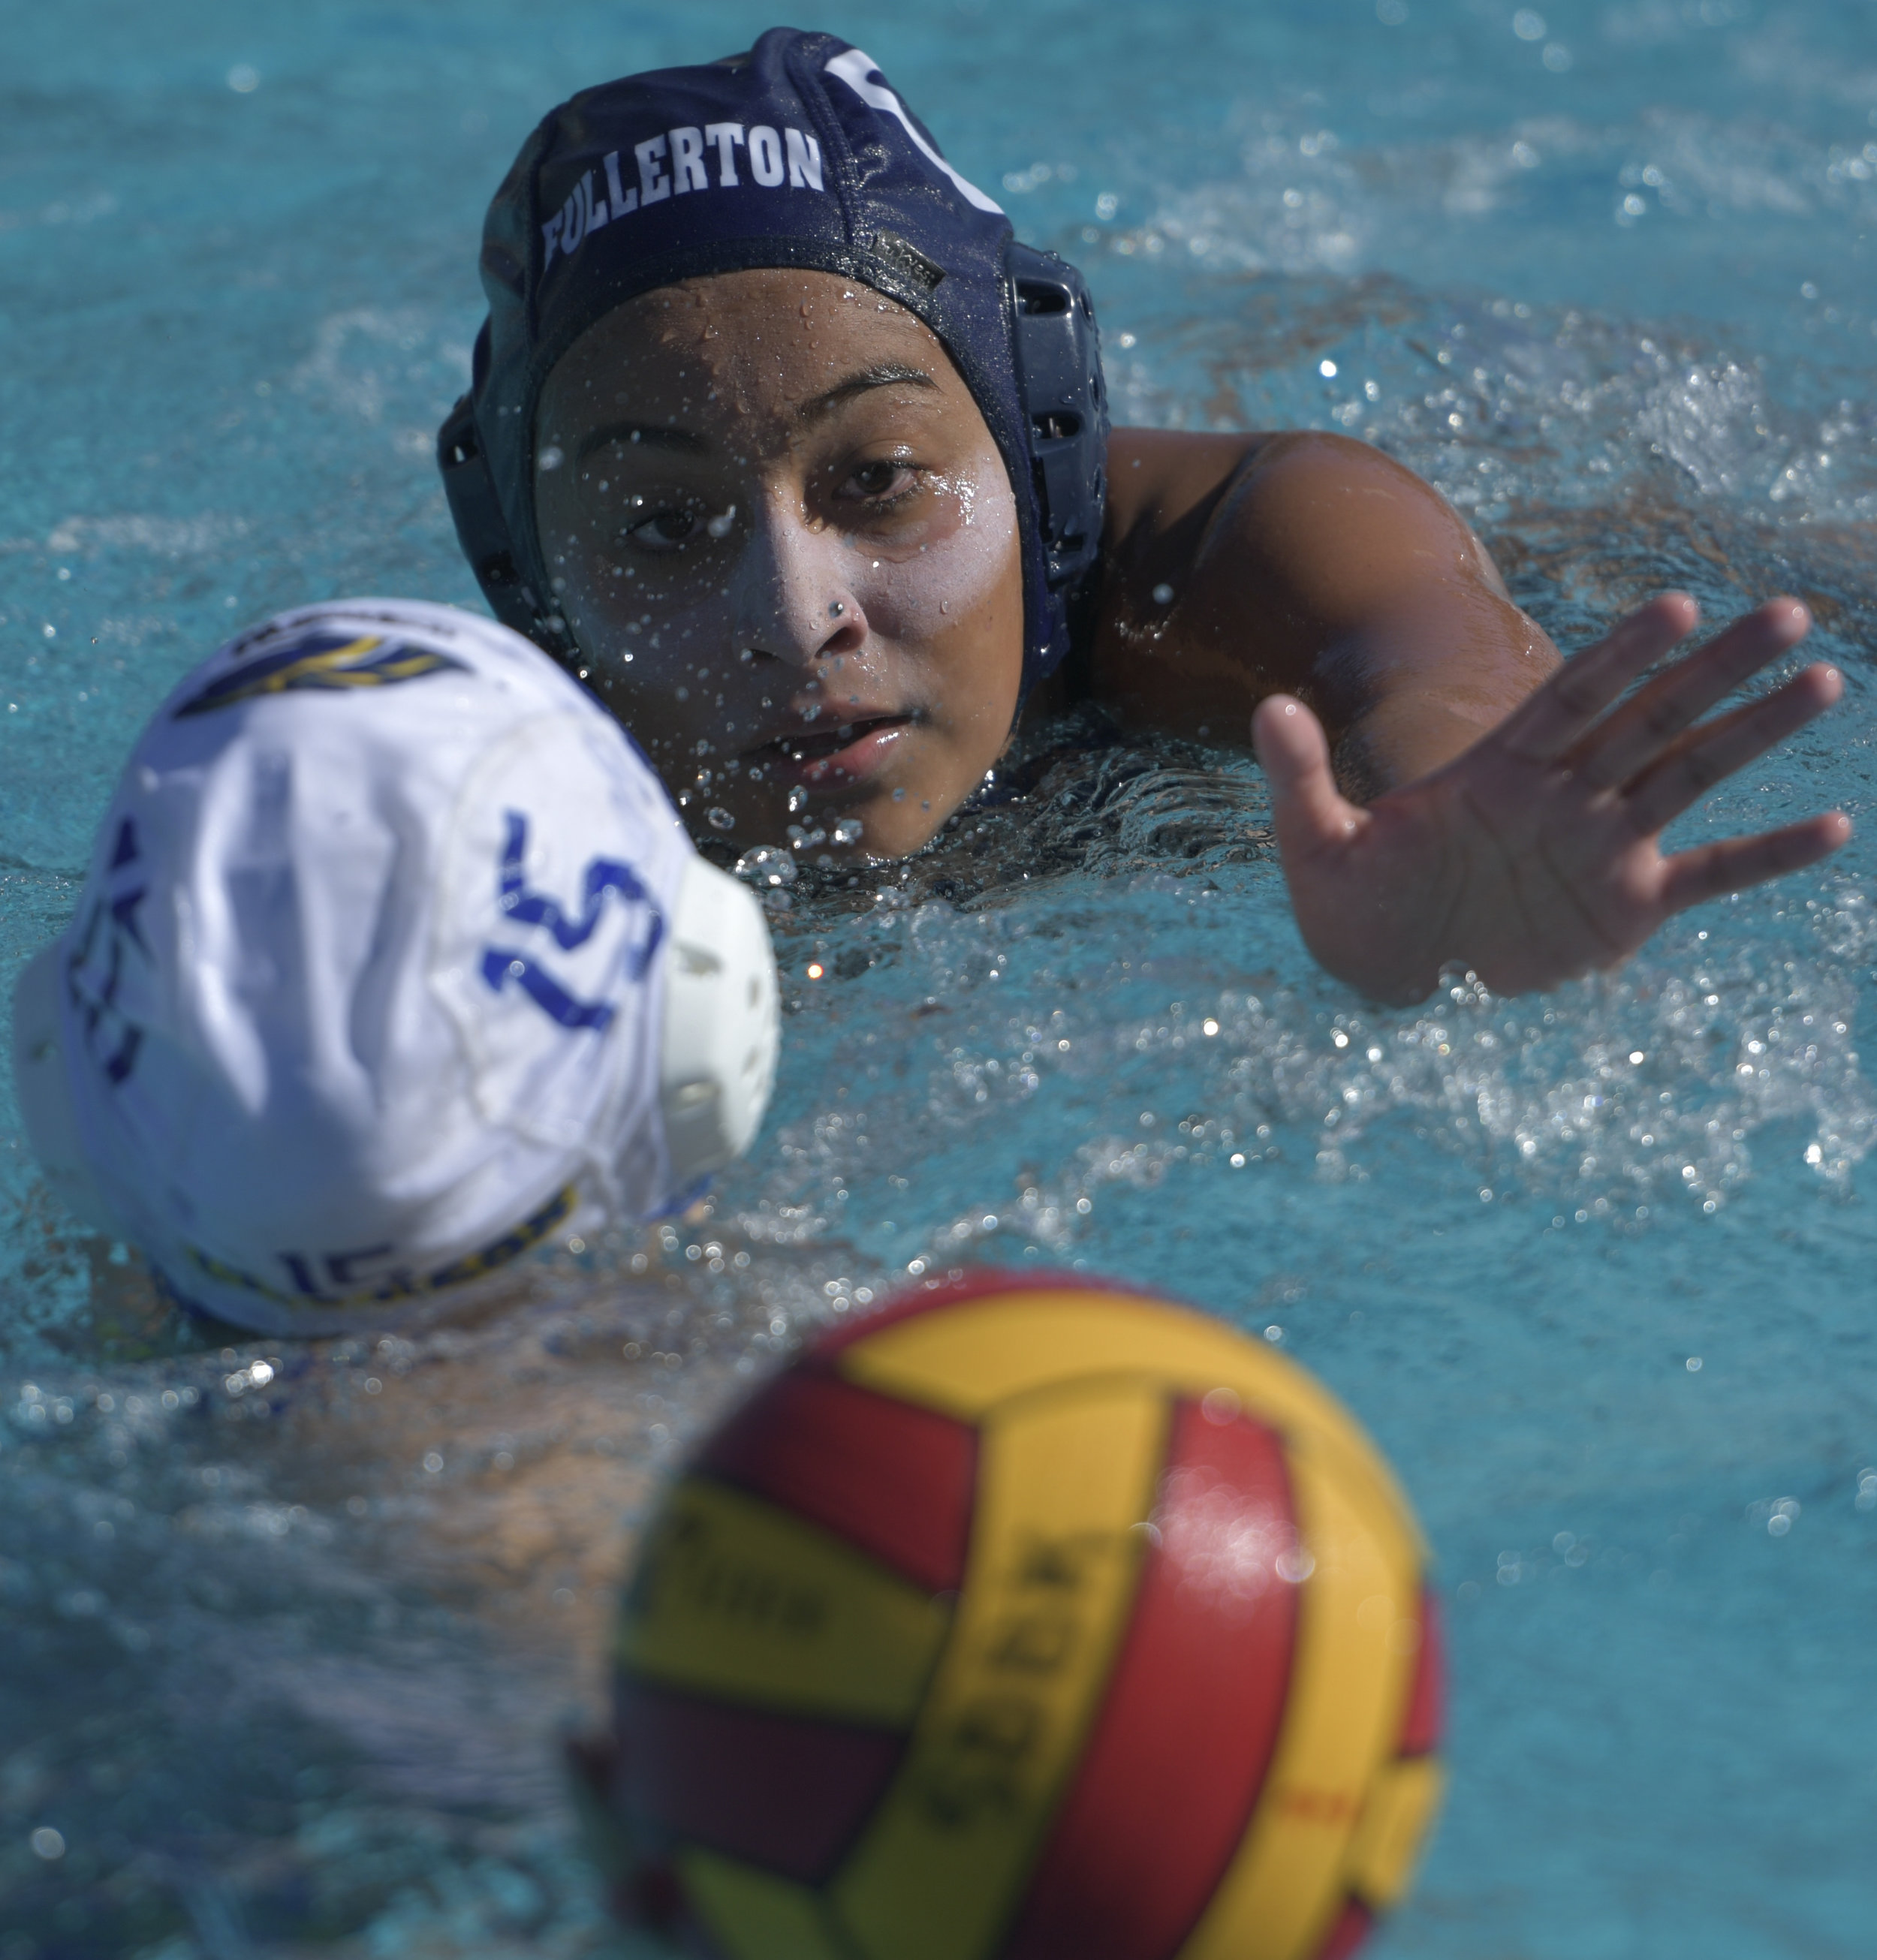 11-3-16-WaterPolo_B-353.jpg